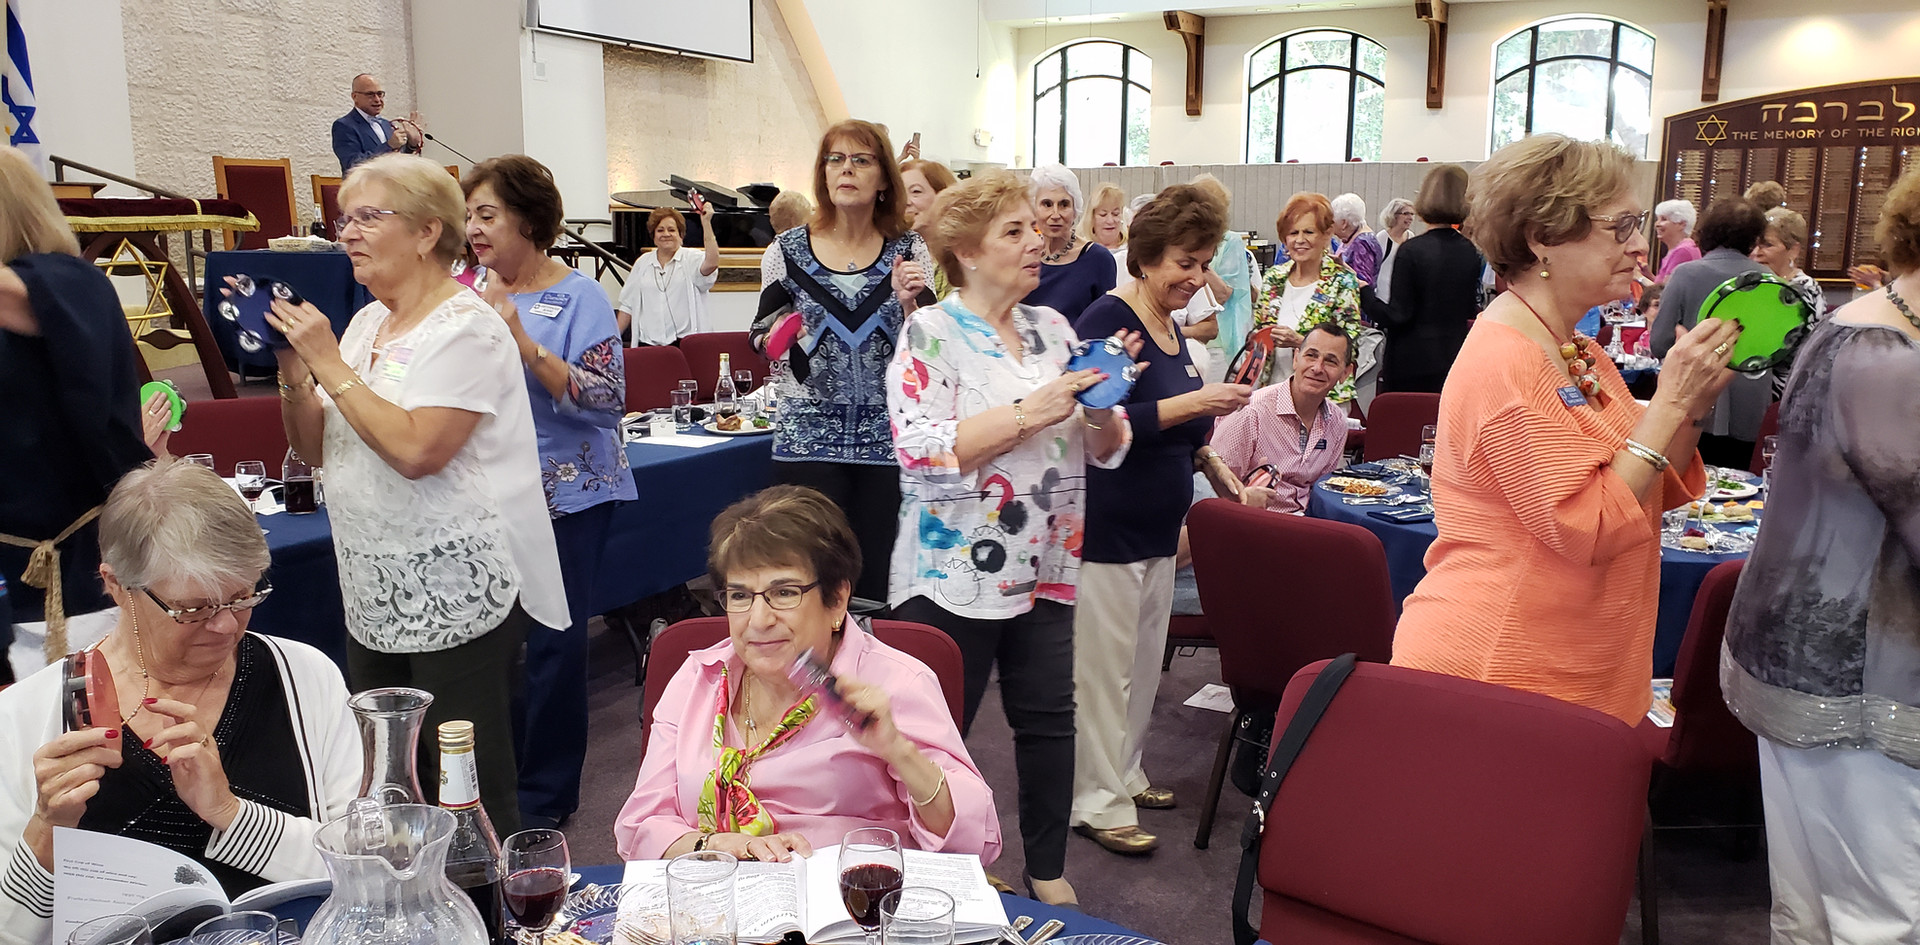 Dancing at Women's Seder